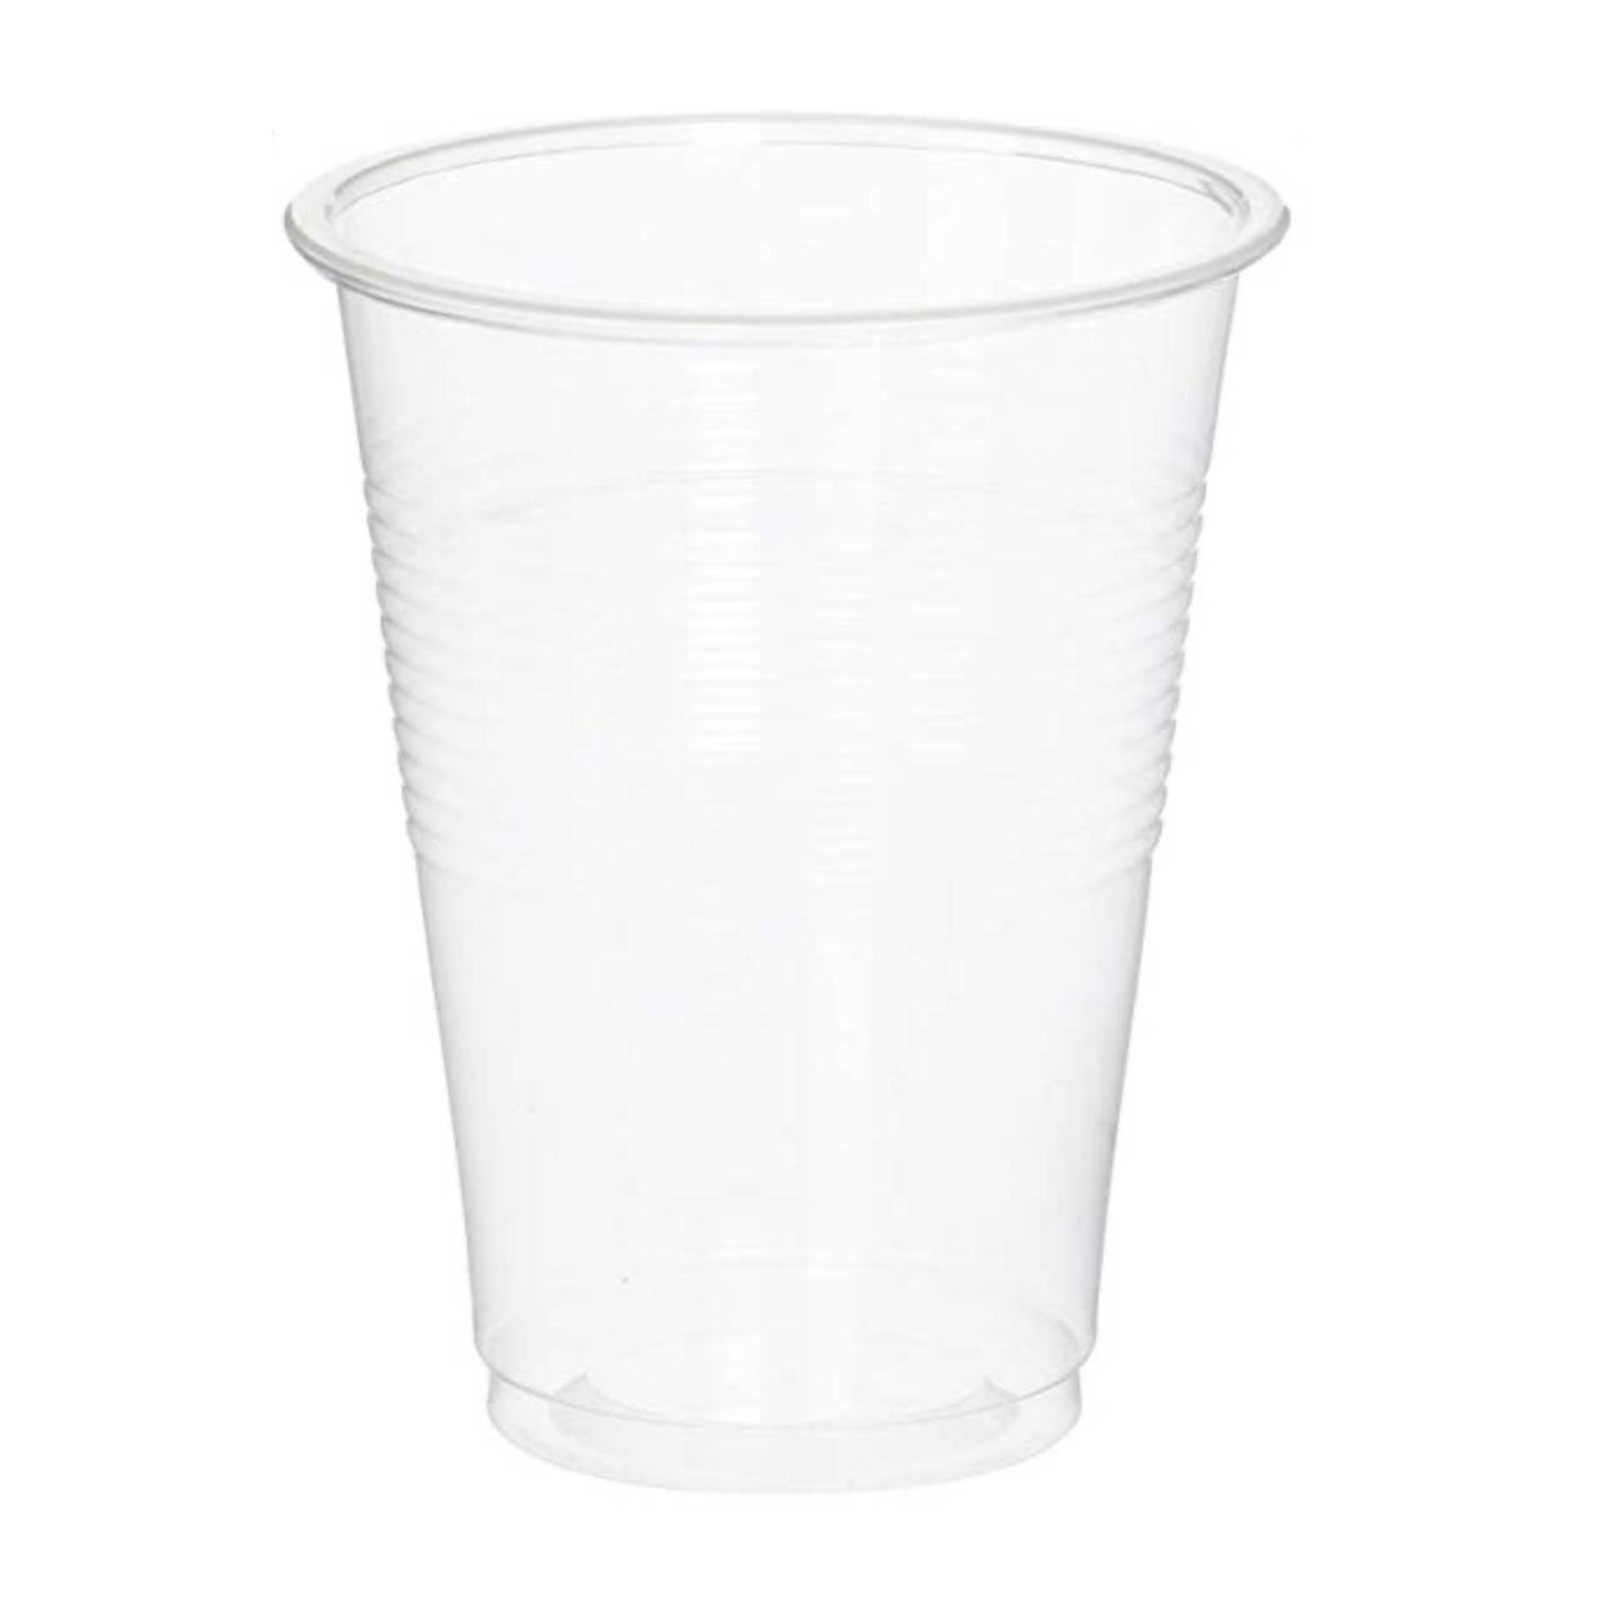 MTRADE Disposable 7 Oz Clear Plastic Cups